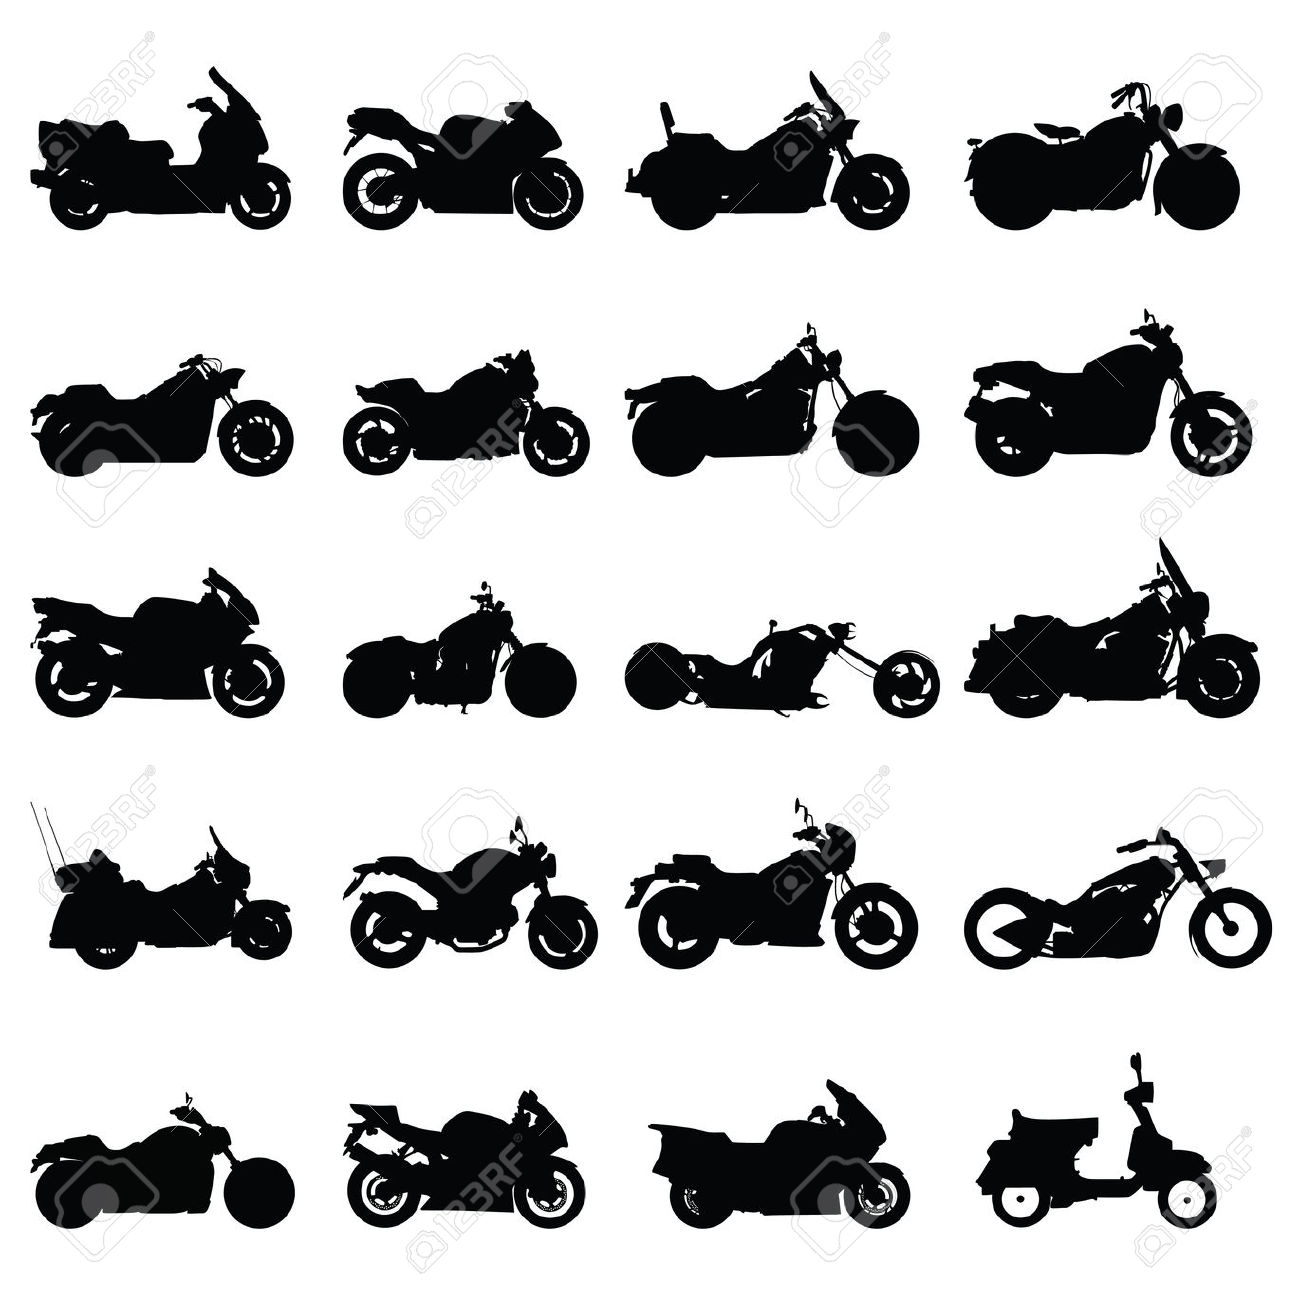 Harley davidson clipart silhouette banner transparent stock Free vector clipart silhouette harley motorcycle - ClipartFest banner transparent stock